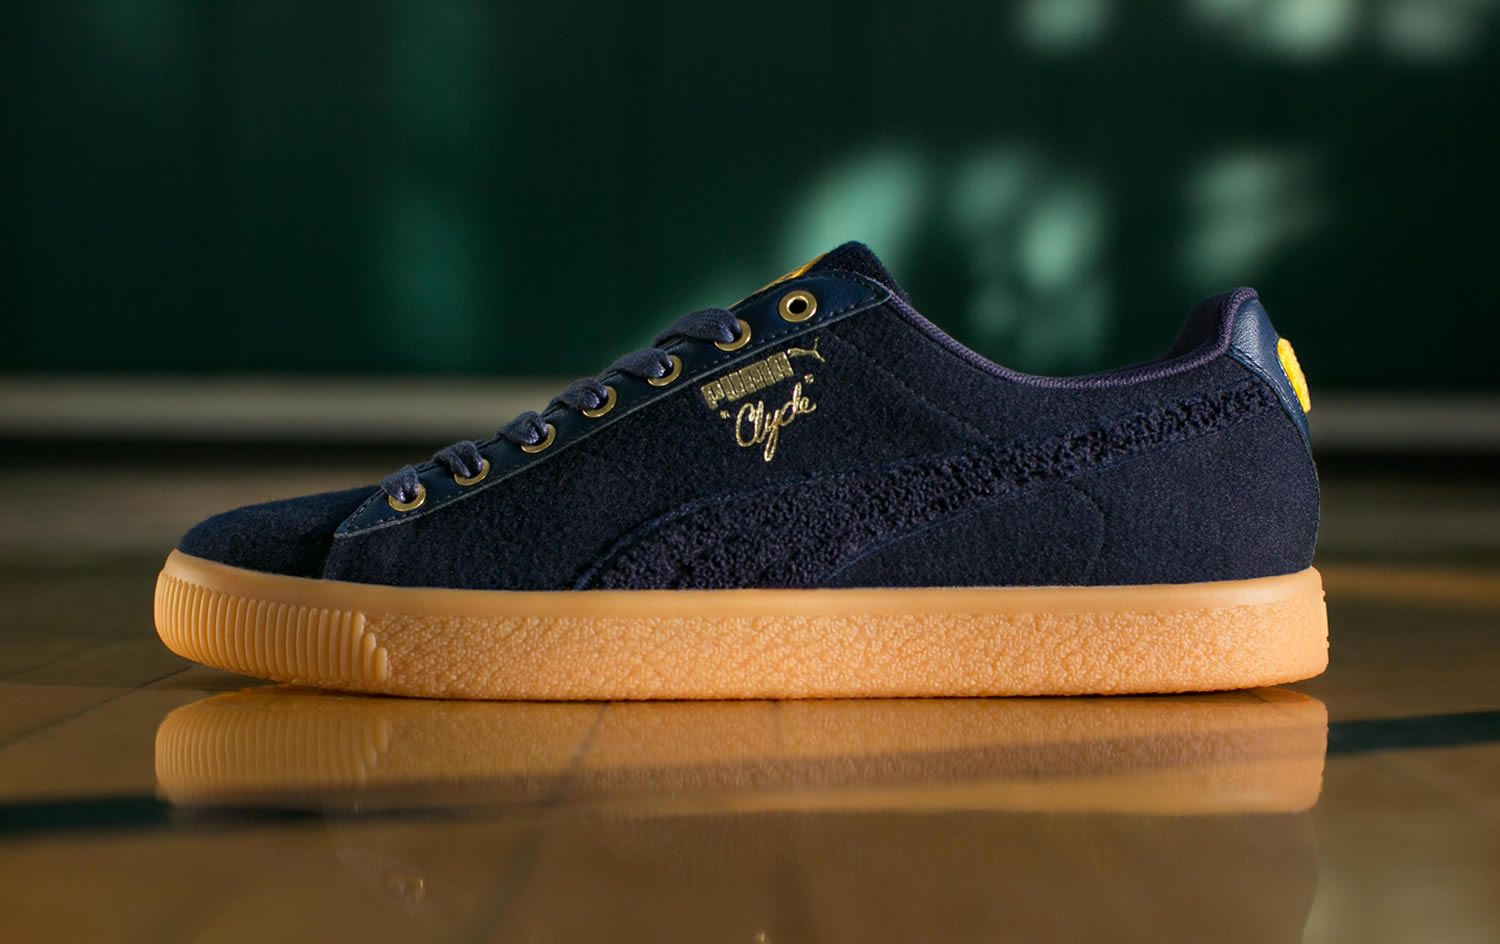 Puma Clyde Legacy Collection #puma #pumaclyde #trainers